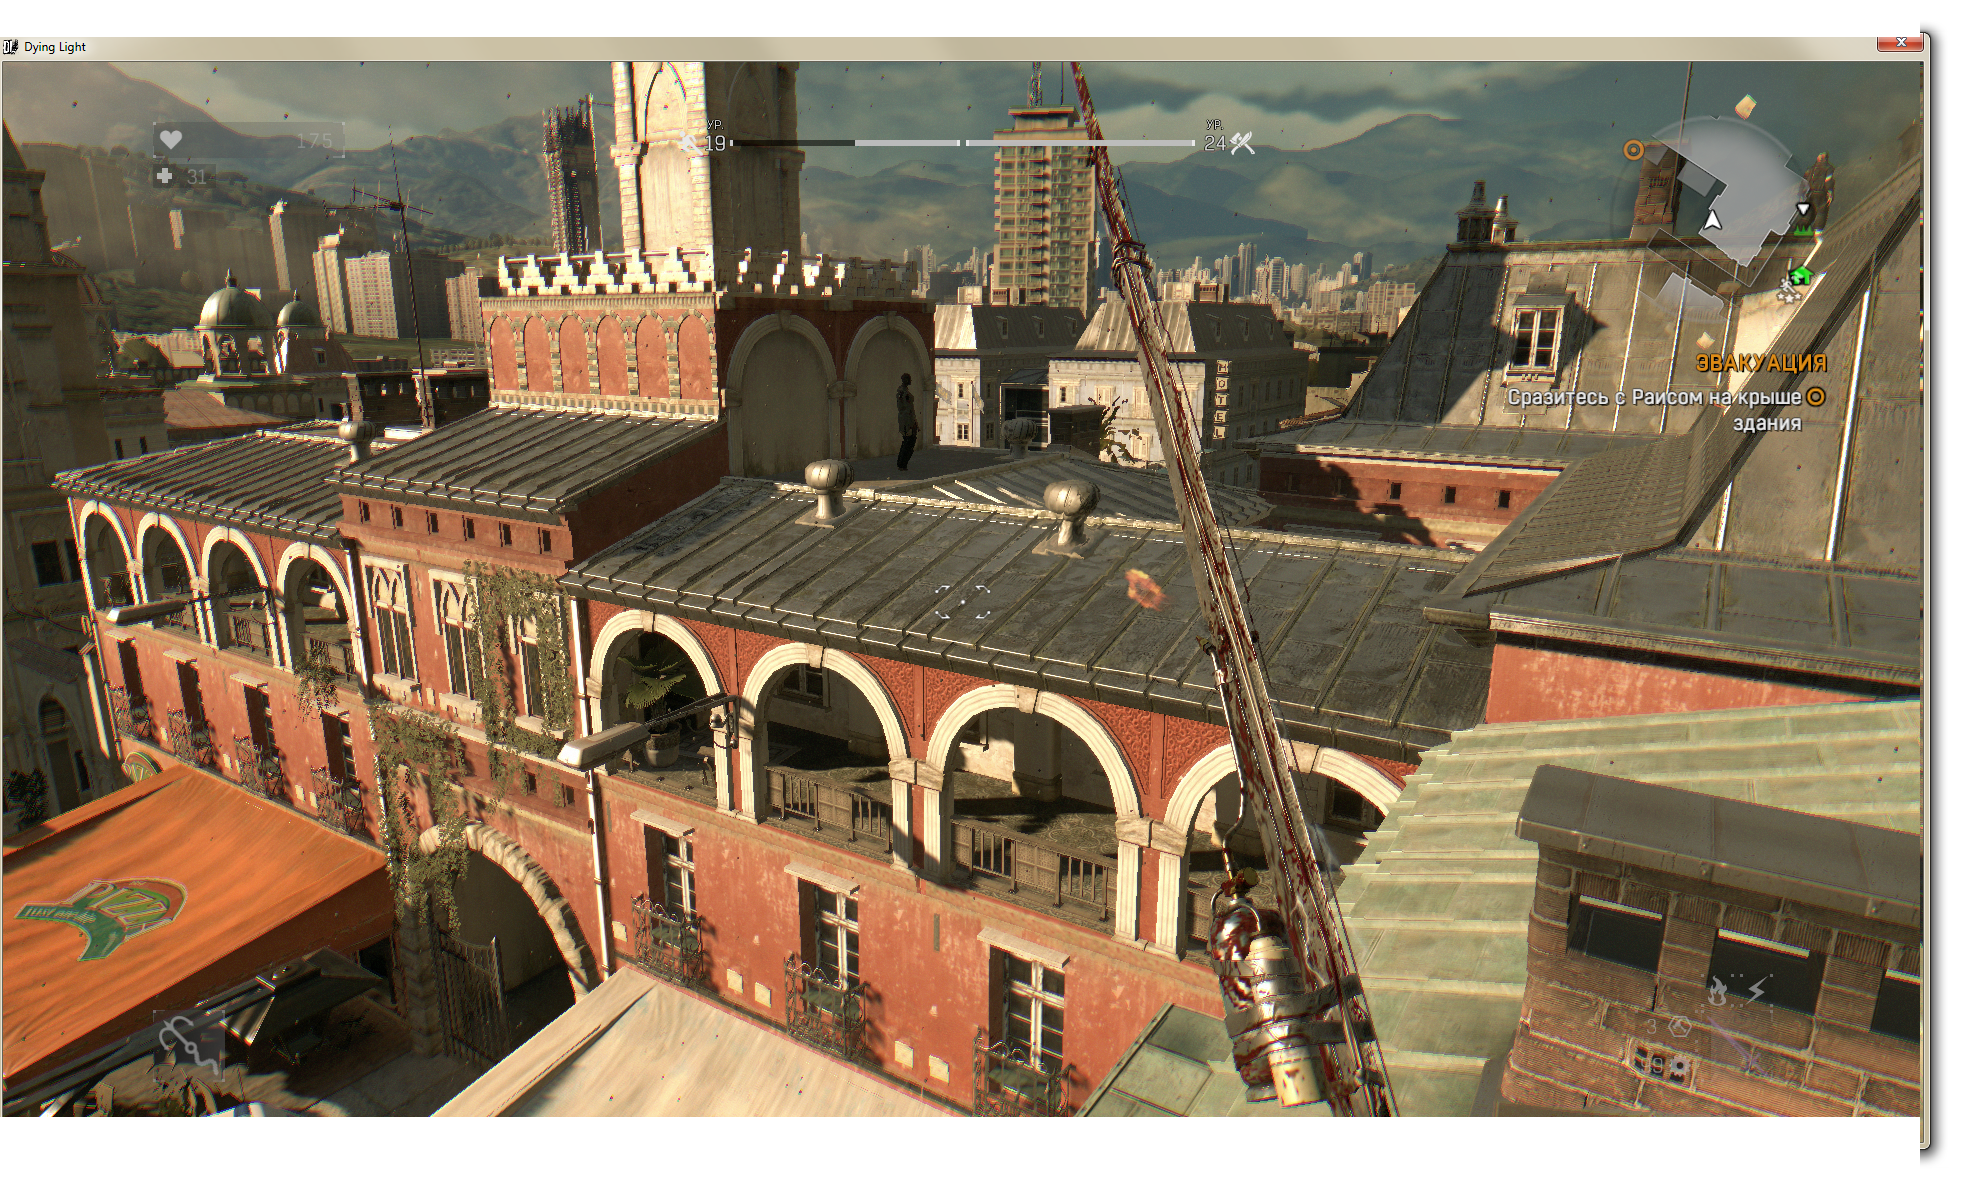 2015-02-06 15-30-41 Dying Light